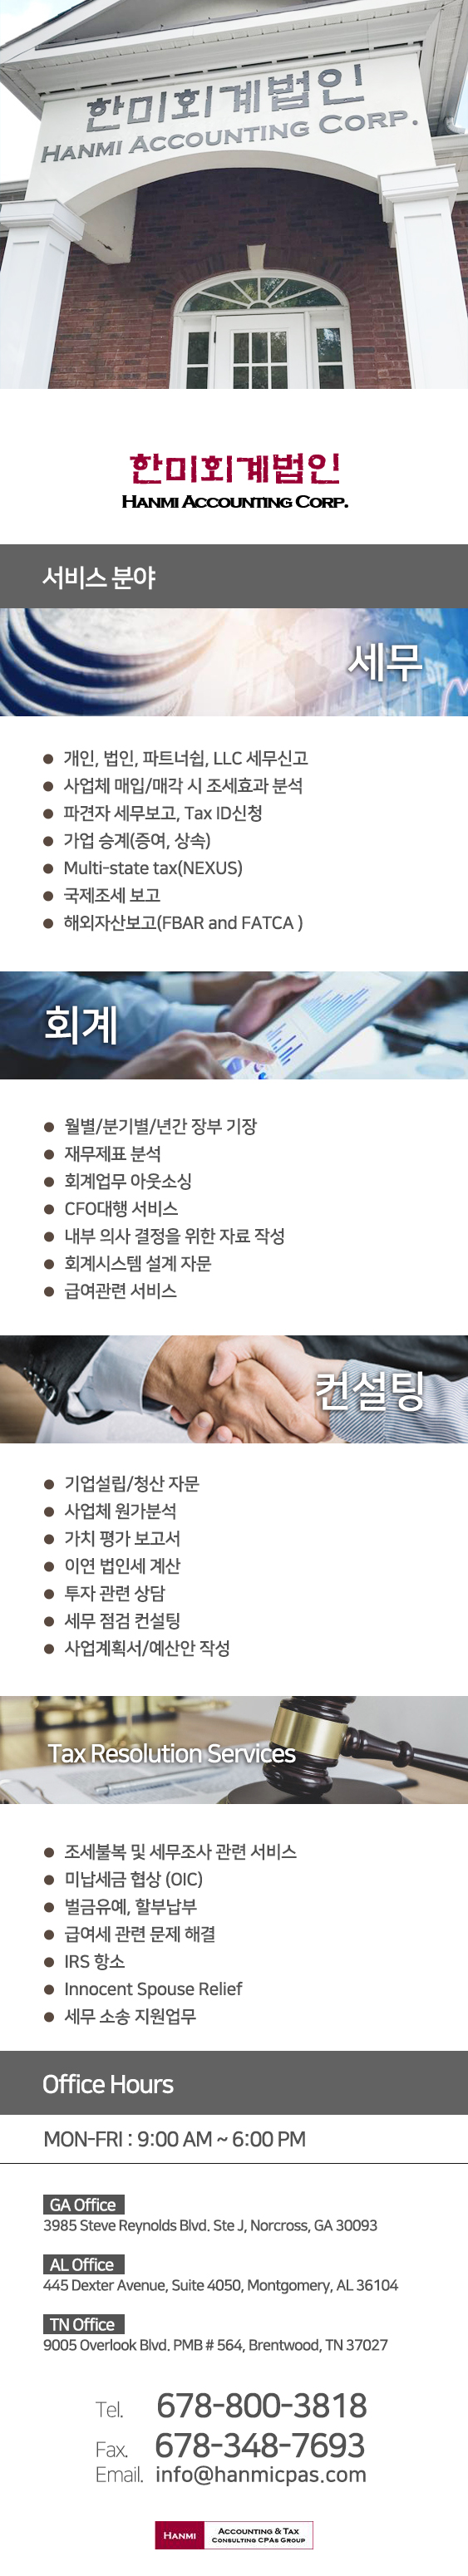 한미 회계법인 | CPA Office in Duluth